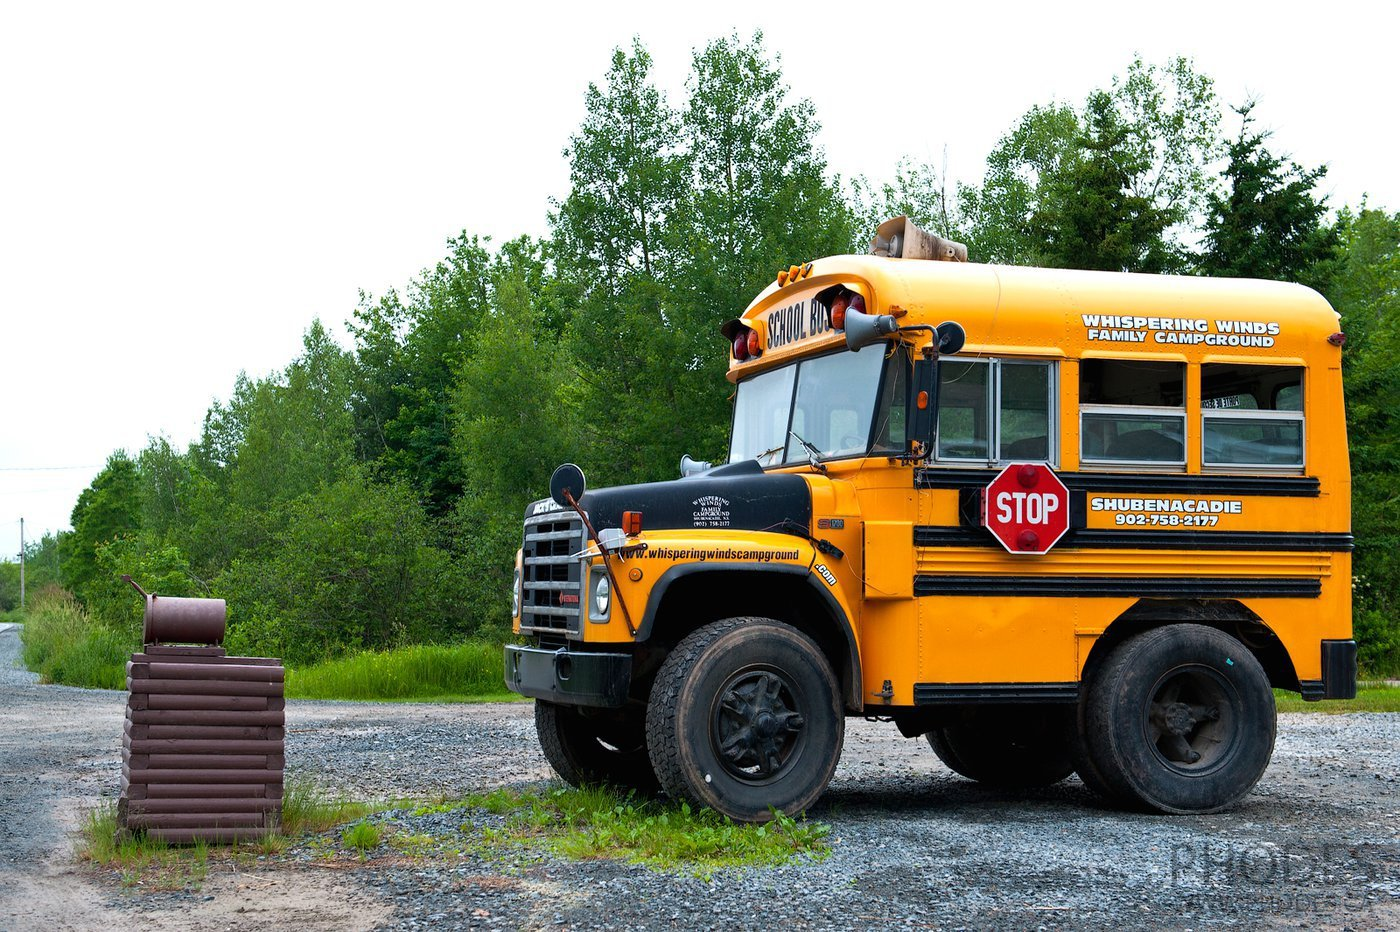 School bus on Cape Breton Island in Nova Scotia